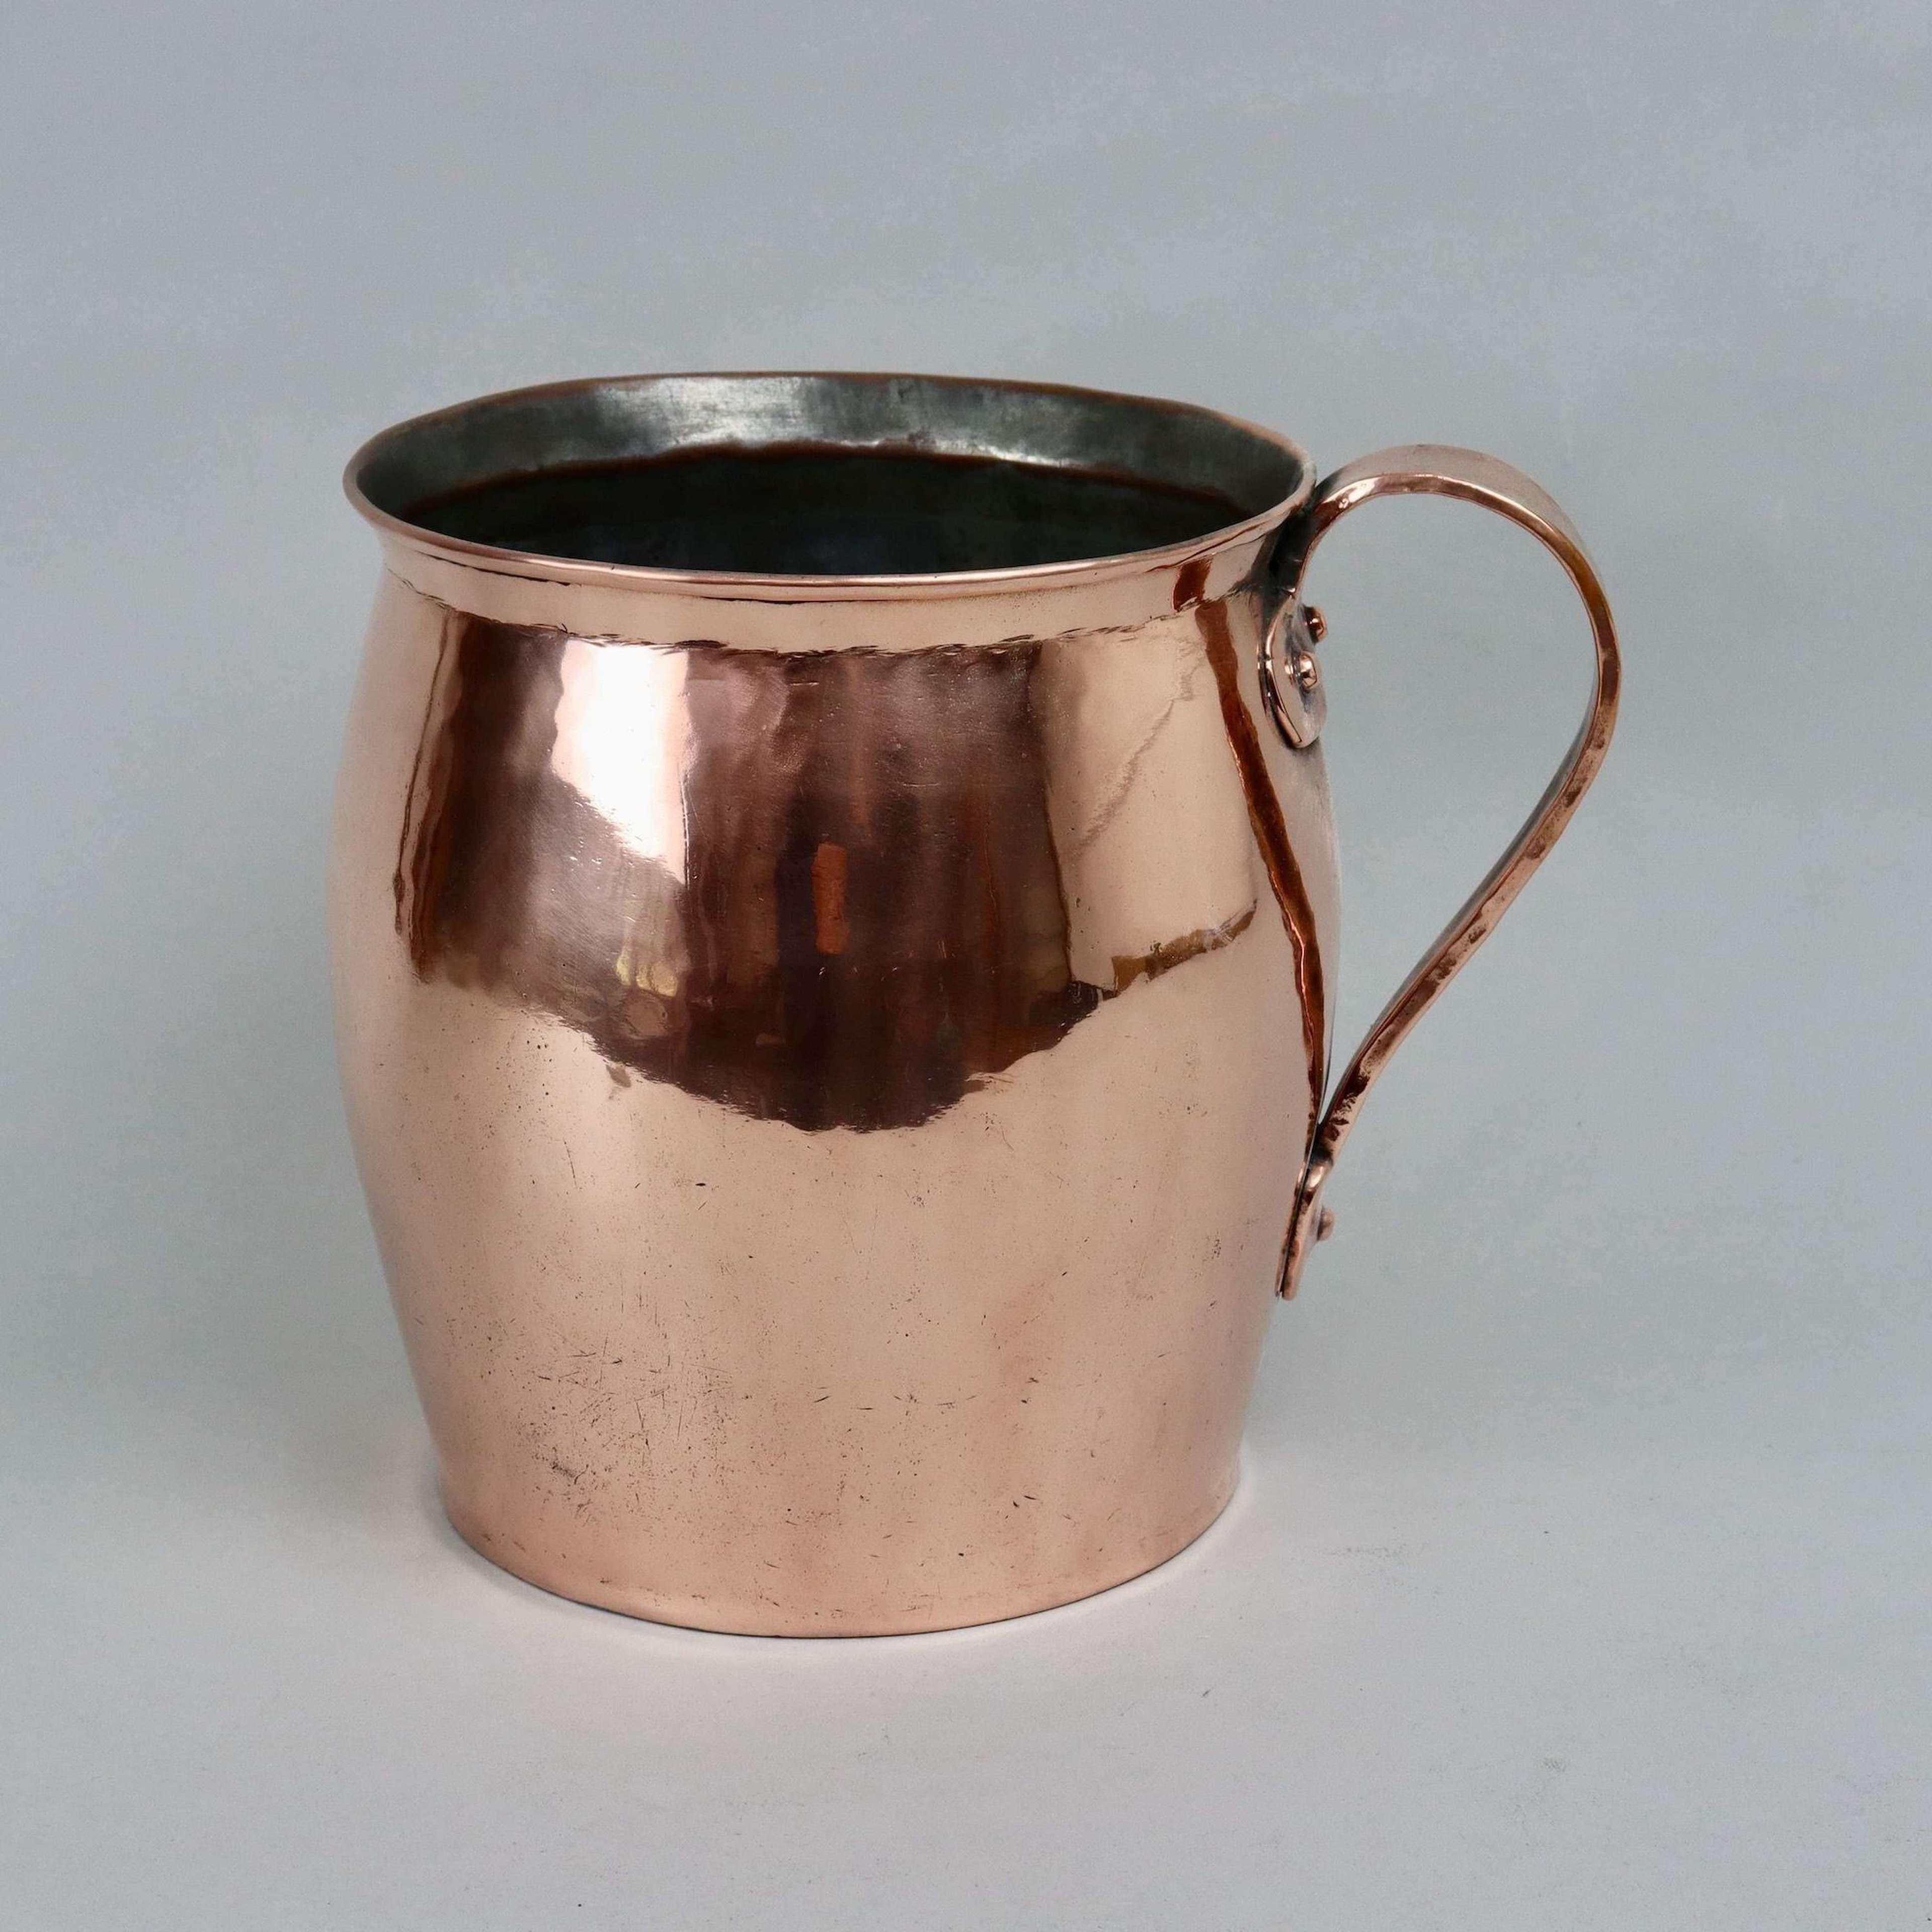 Early 19th century copper pot